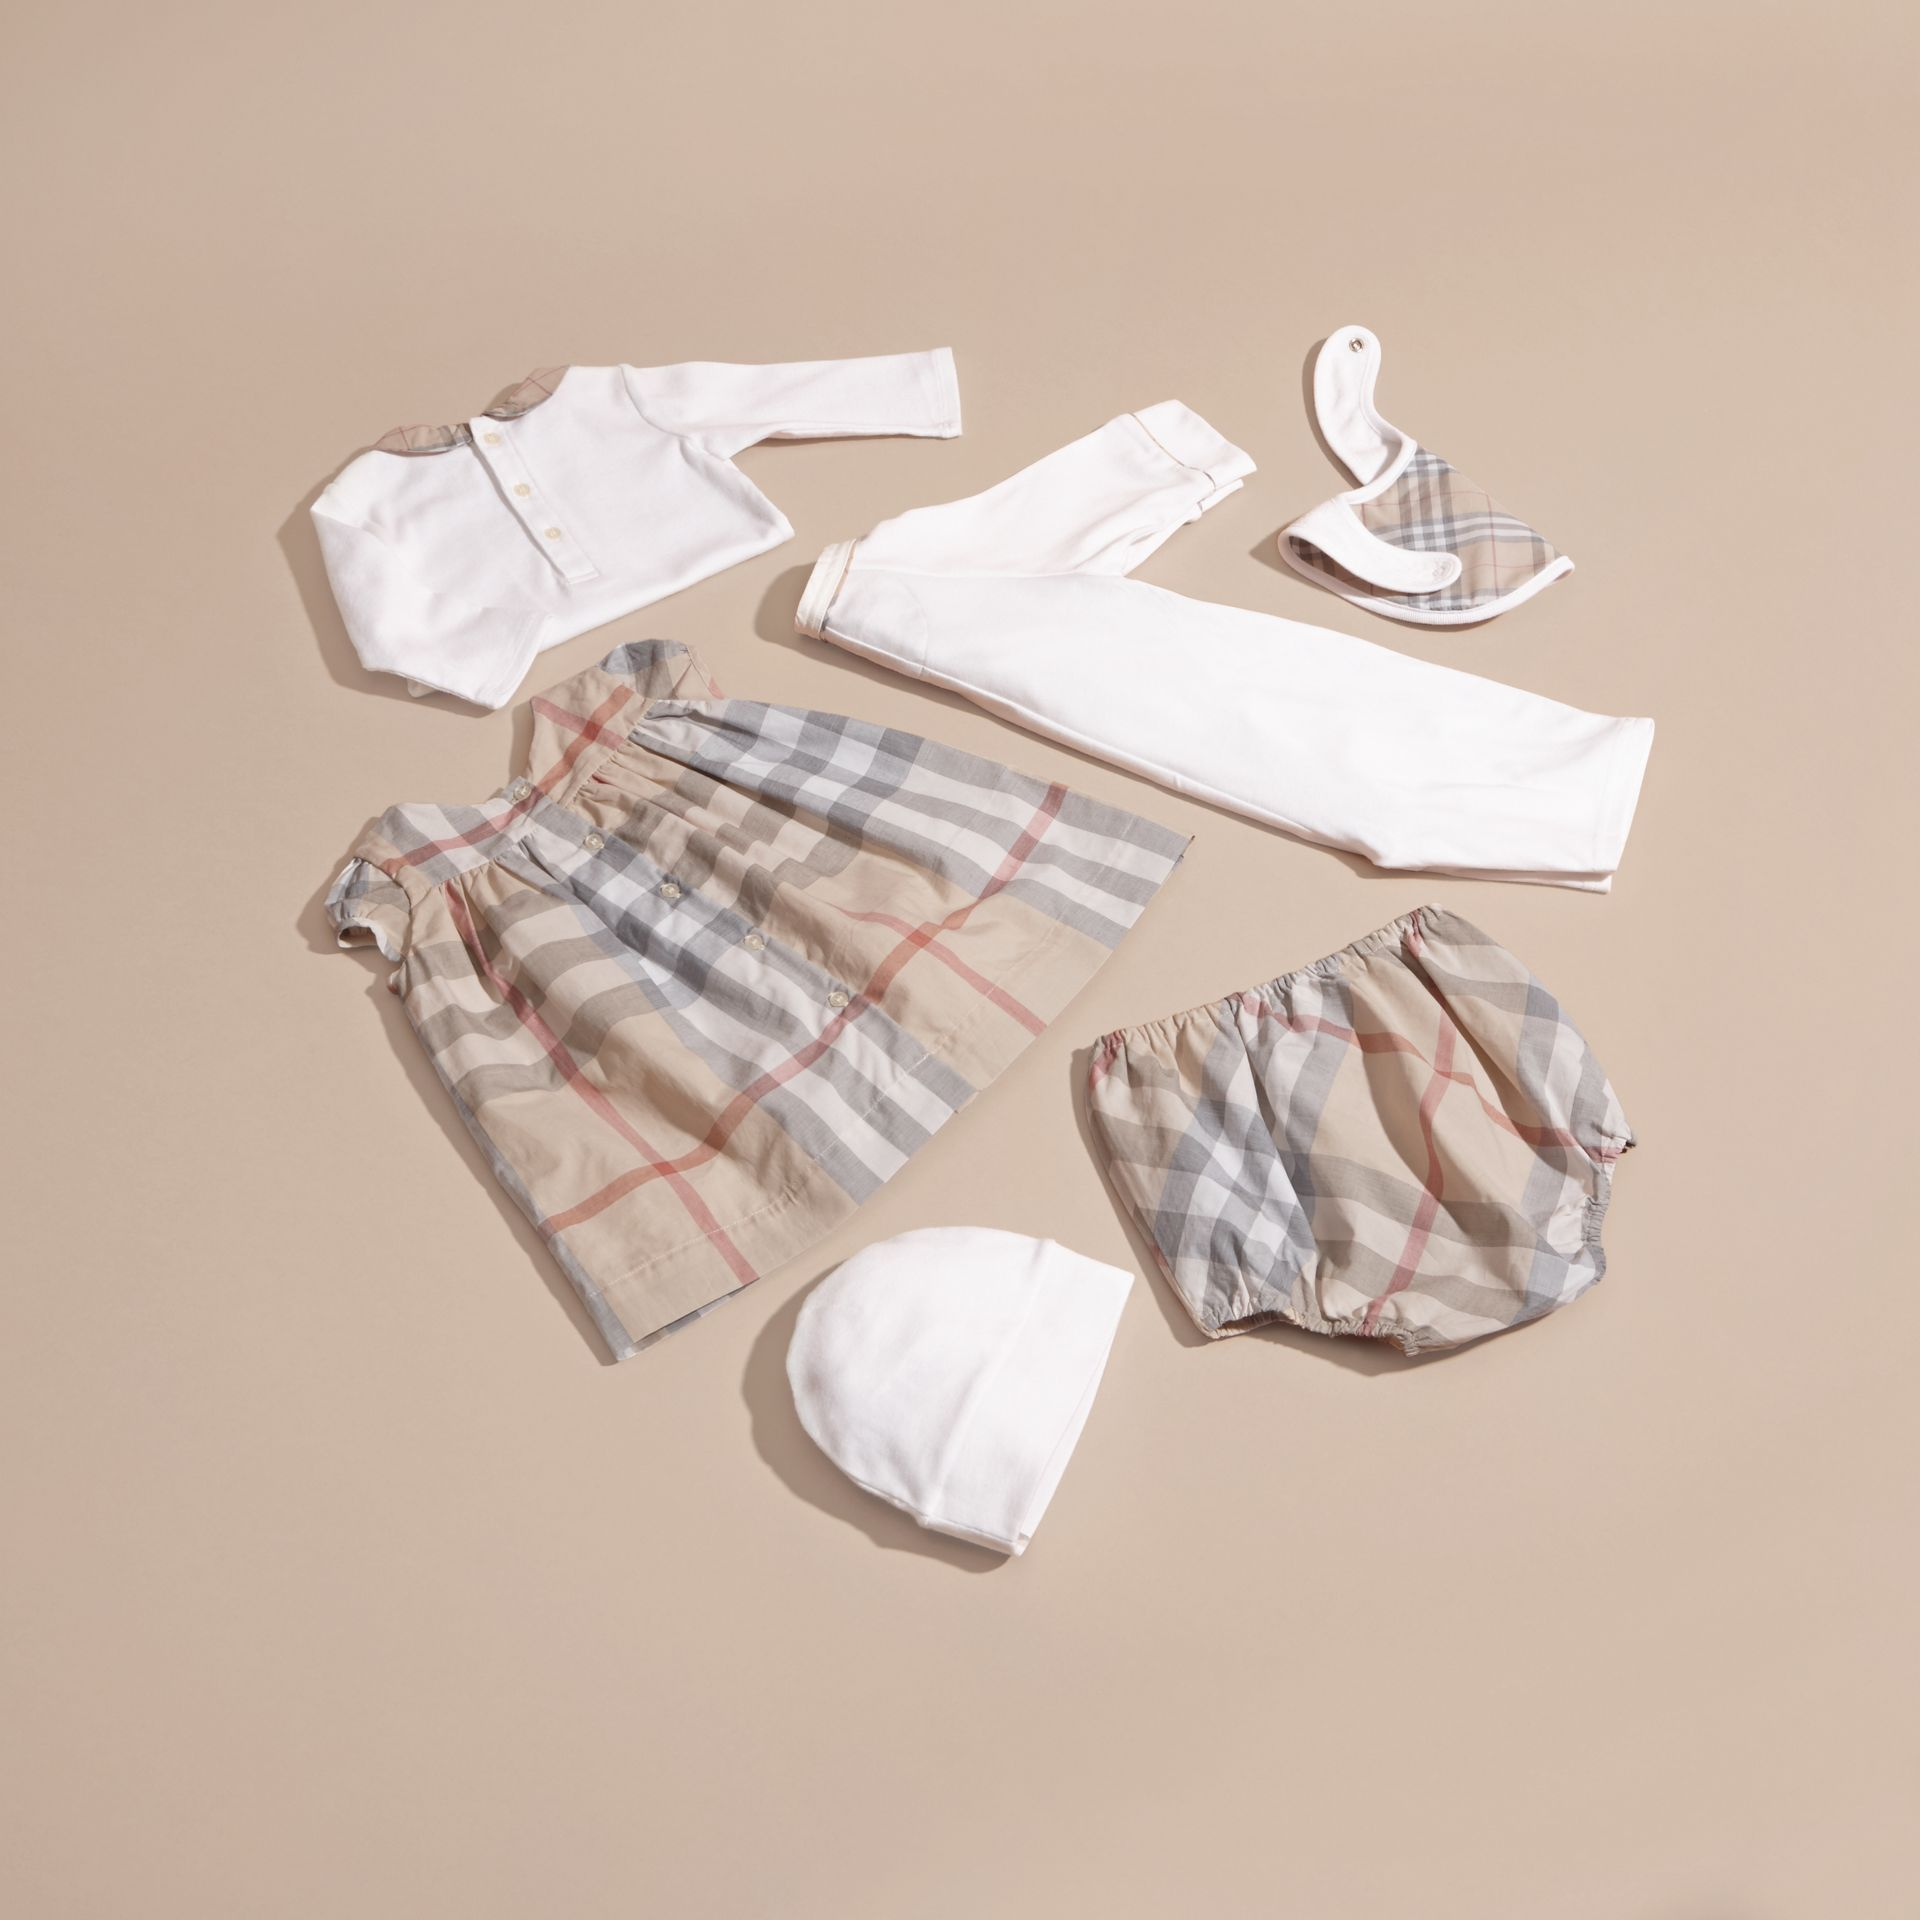 Cotton Six-piece Baby Gift Set - gallery image 4